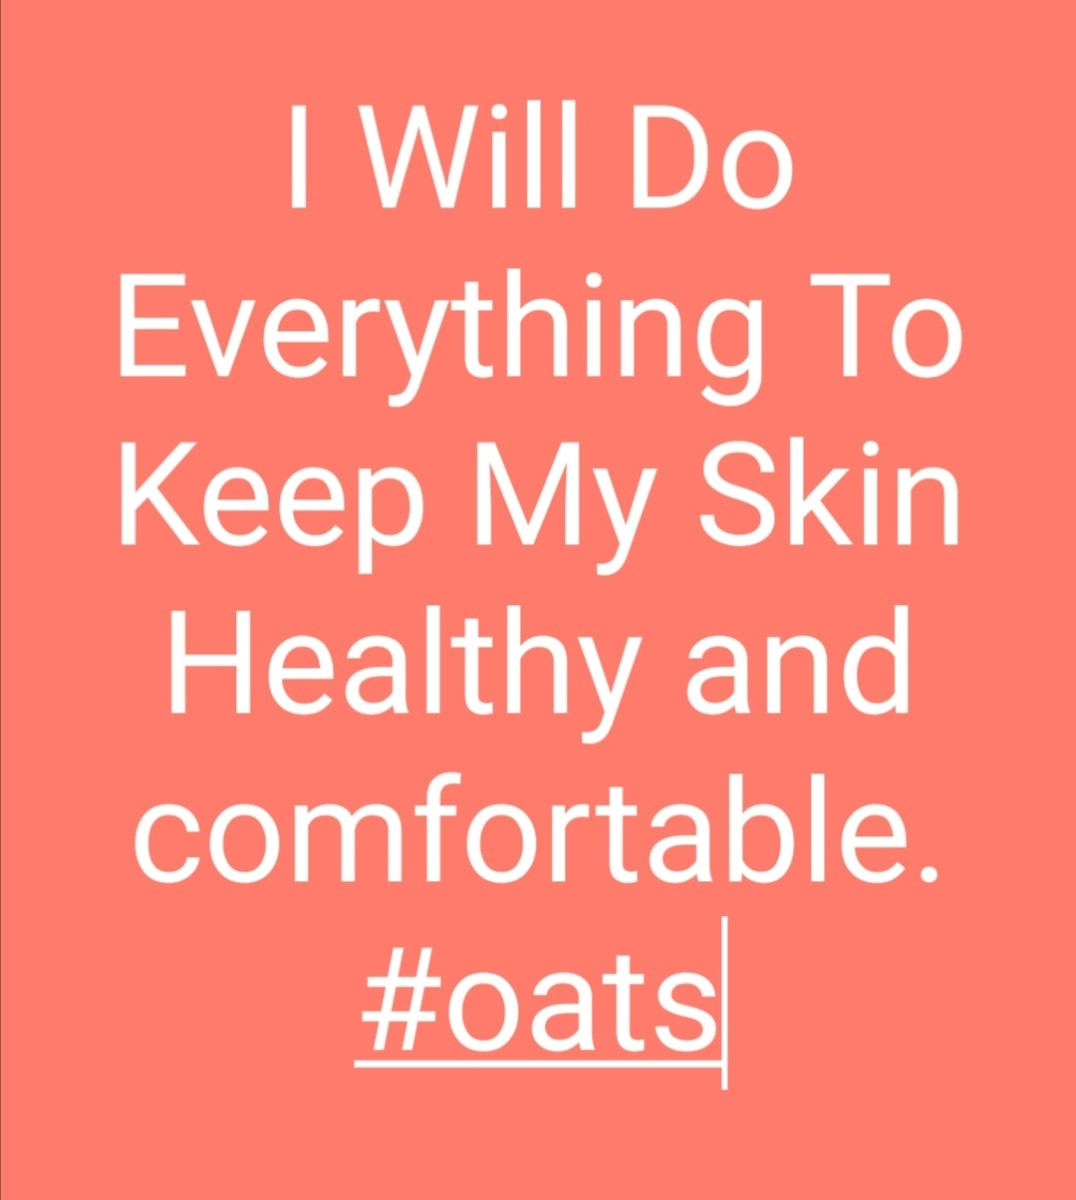 Oats are worth trying!